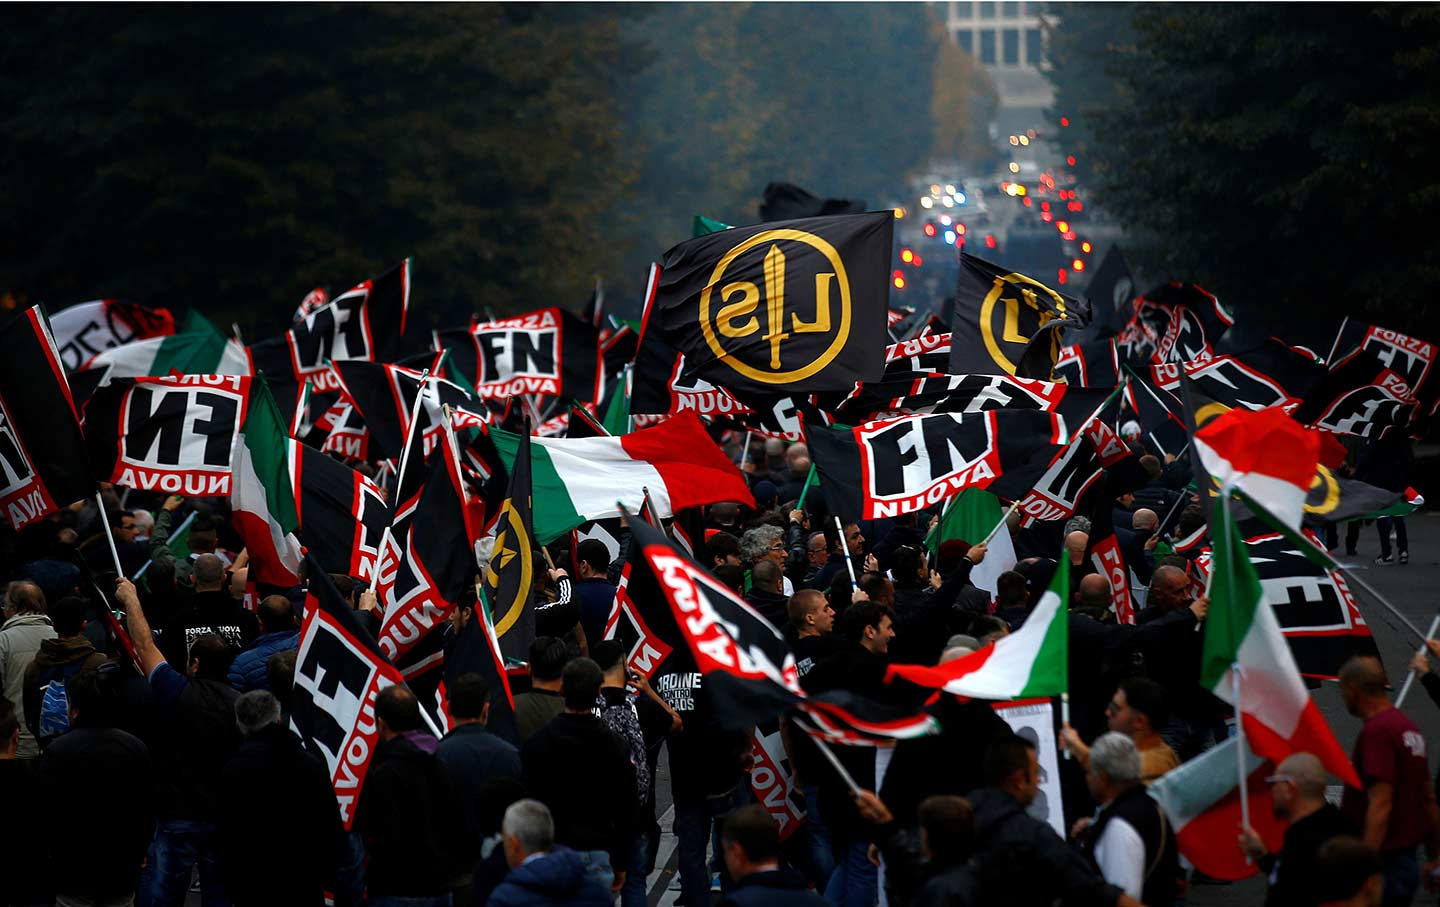 Anti-Fascist, Italy far-right parties, xenophobia, populist right, Italian populists, migrant crisis, anti-immigrant sentiment